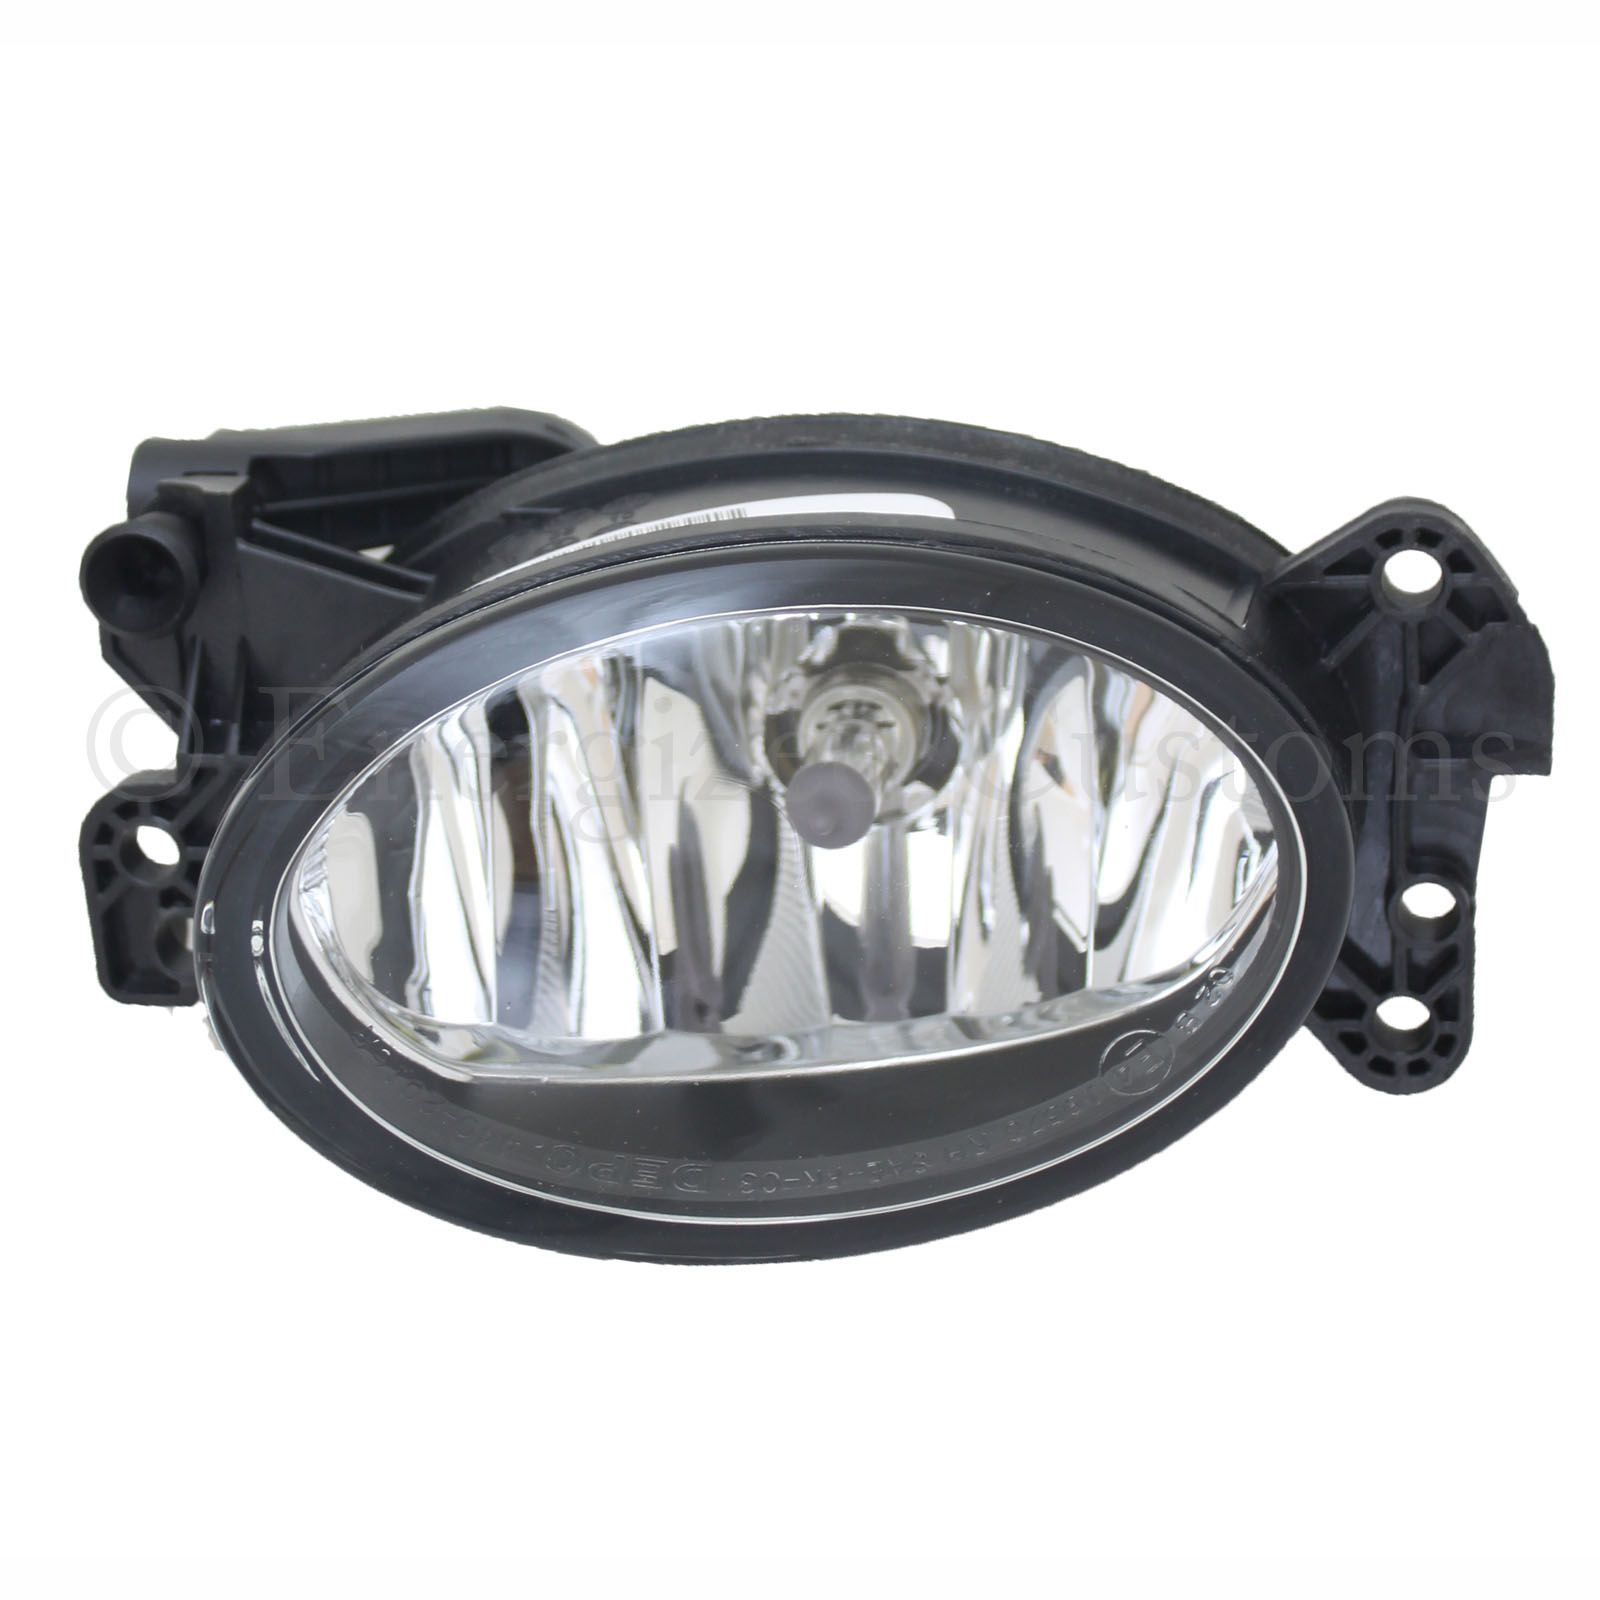 MERCEDES BENZ E CLASS W211 2006-2010 FRONT FOG LIGHT LAMP PASSENGER SIDE N//S